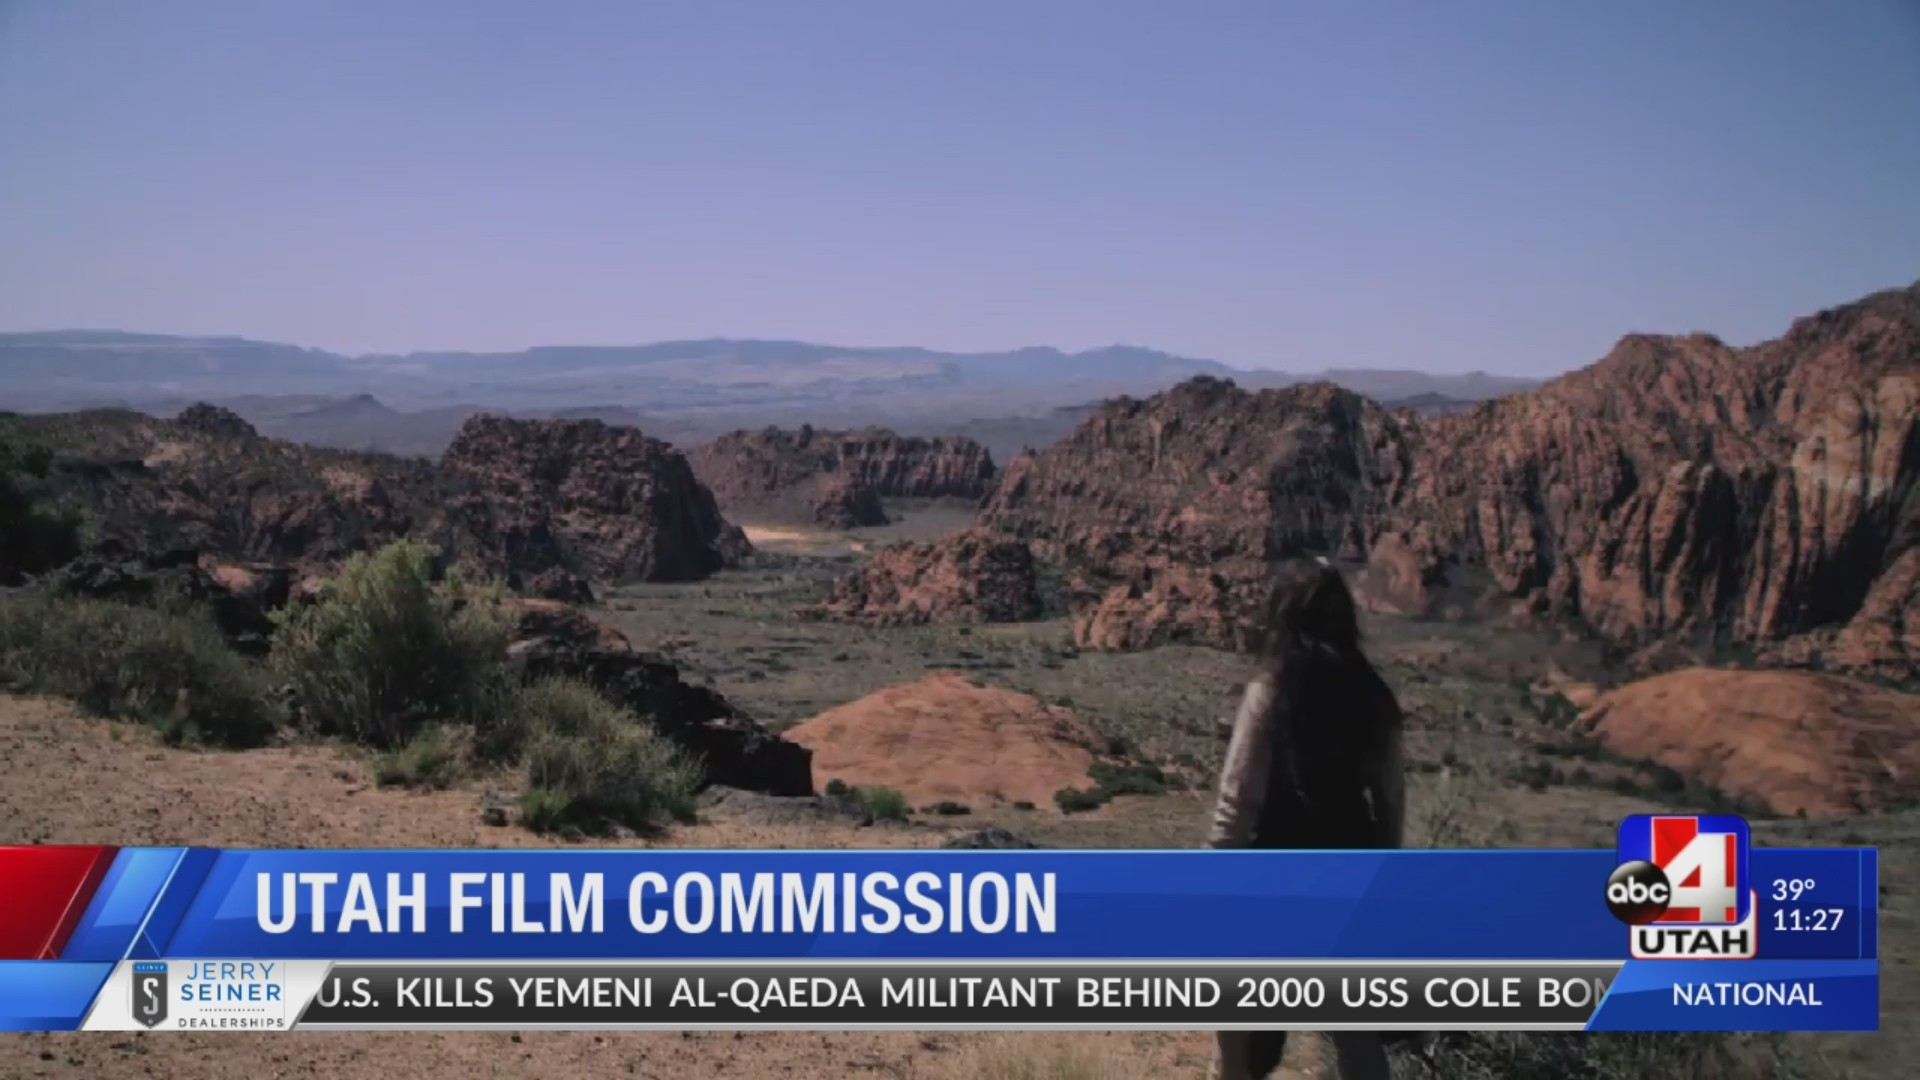 Utah_Film_Commission_1_20190107185808